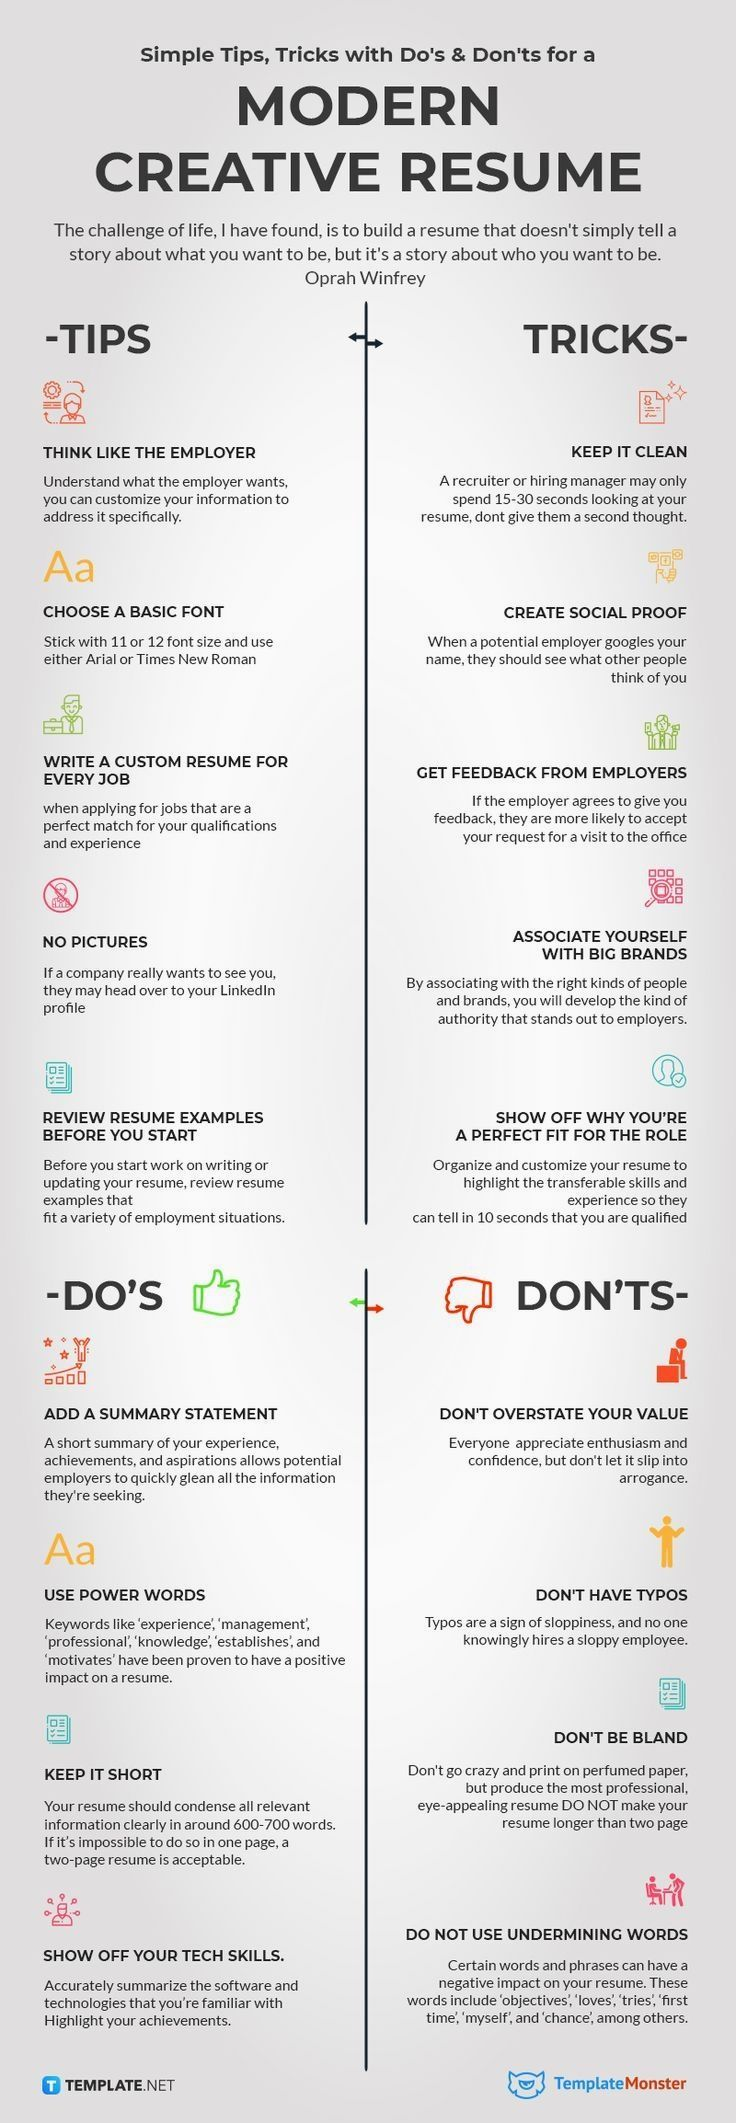 Heres an infographic that will show you how to create